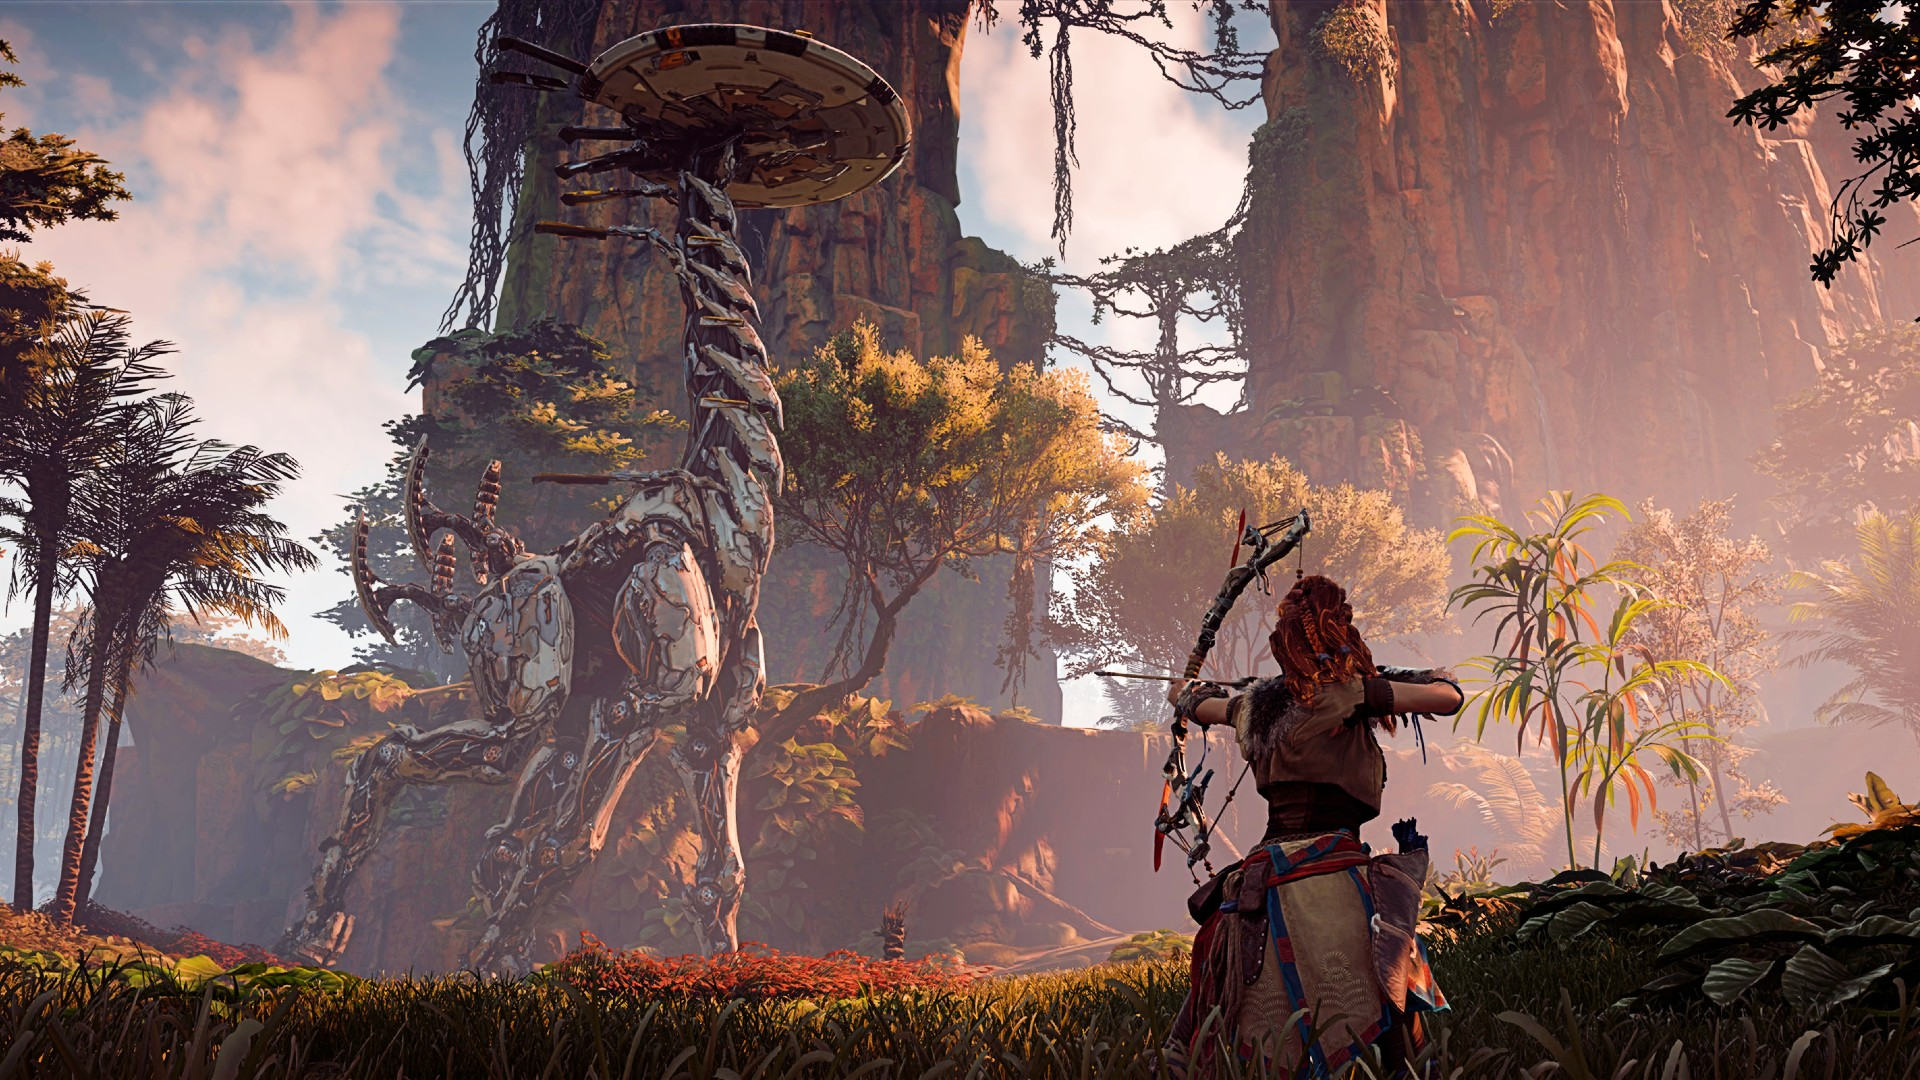 Looks like Fortnite is getting a Horizon Zero Dawn skin and limited-time mode